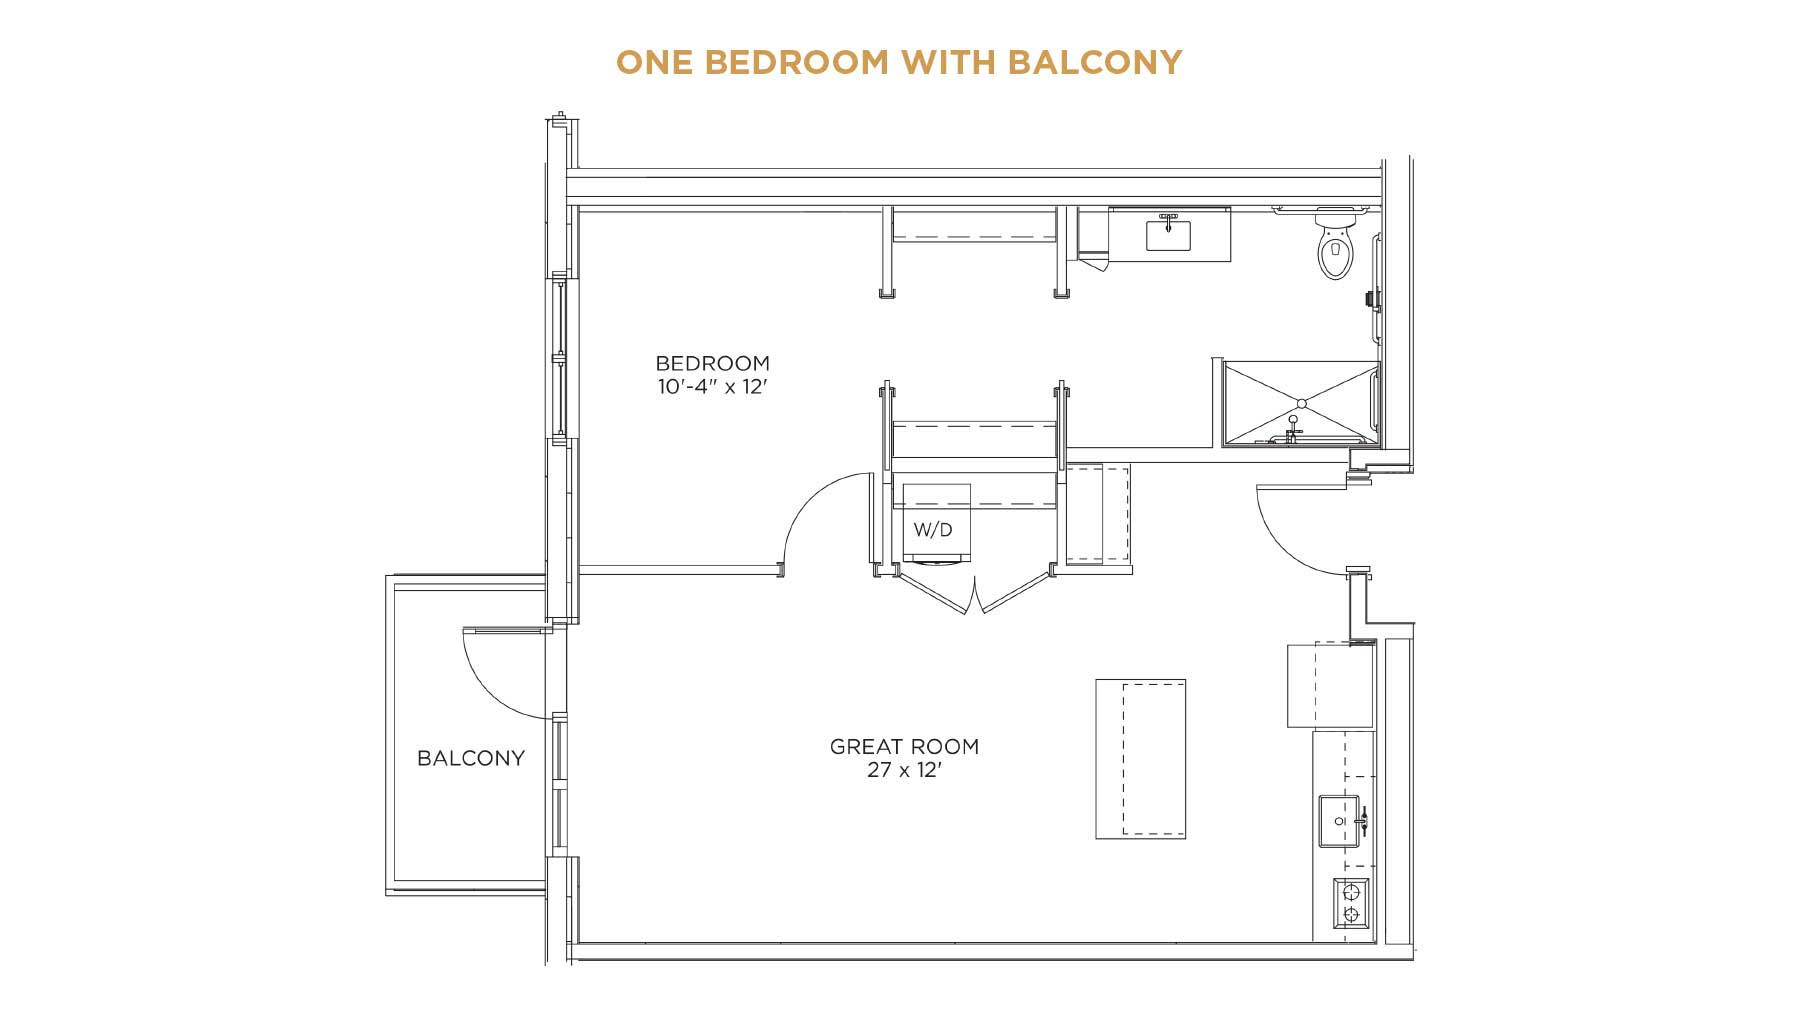 one bedroom with balcony floorplan